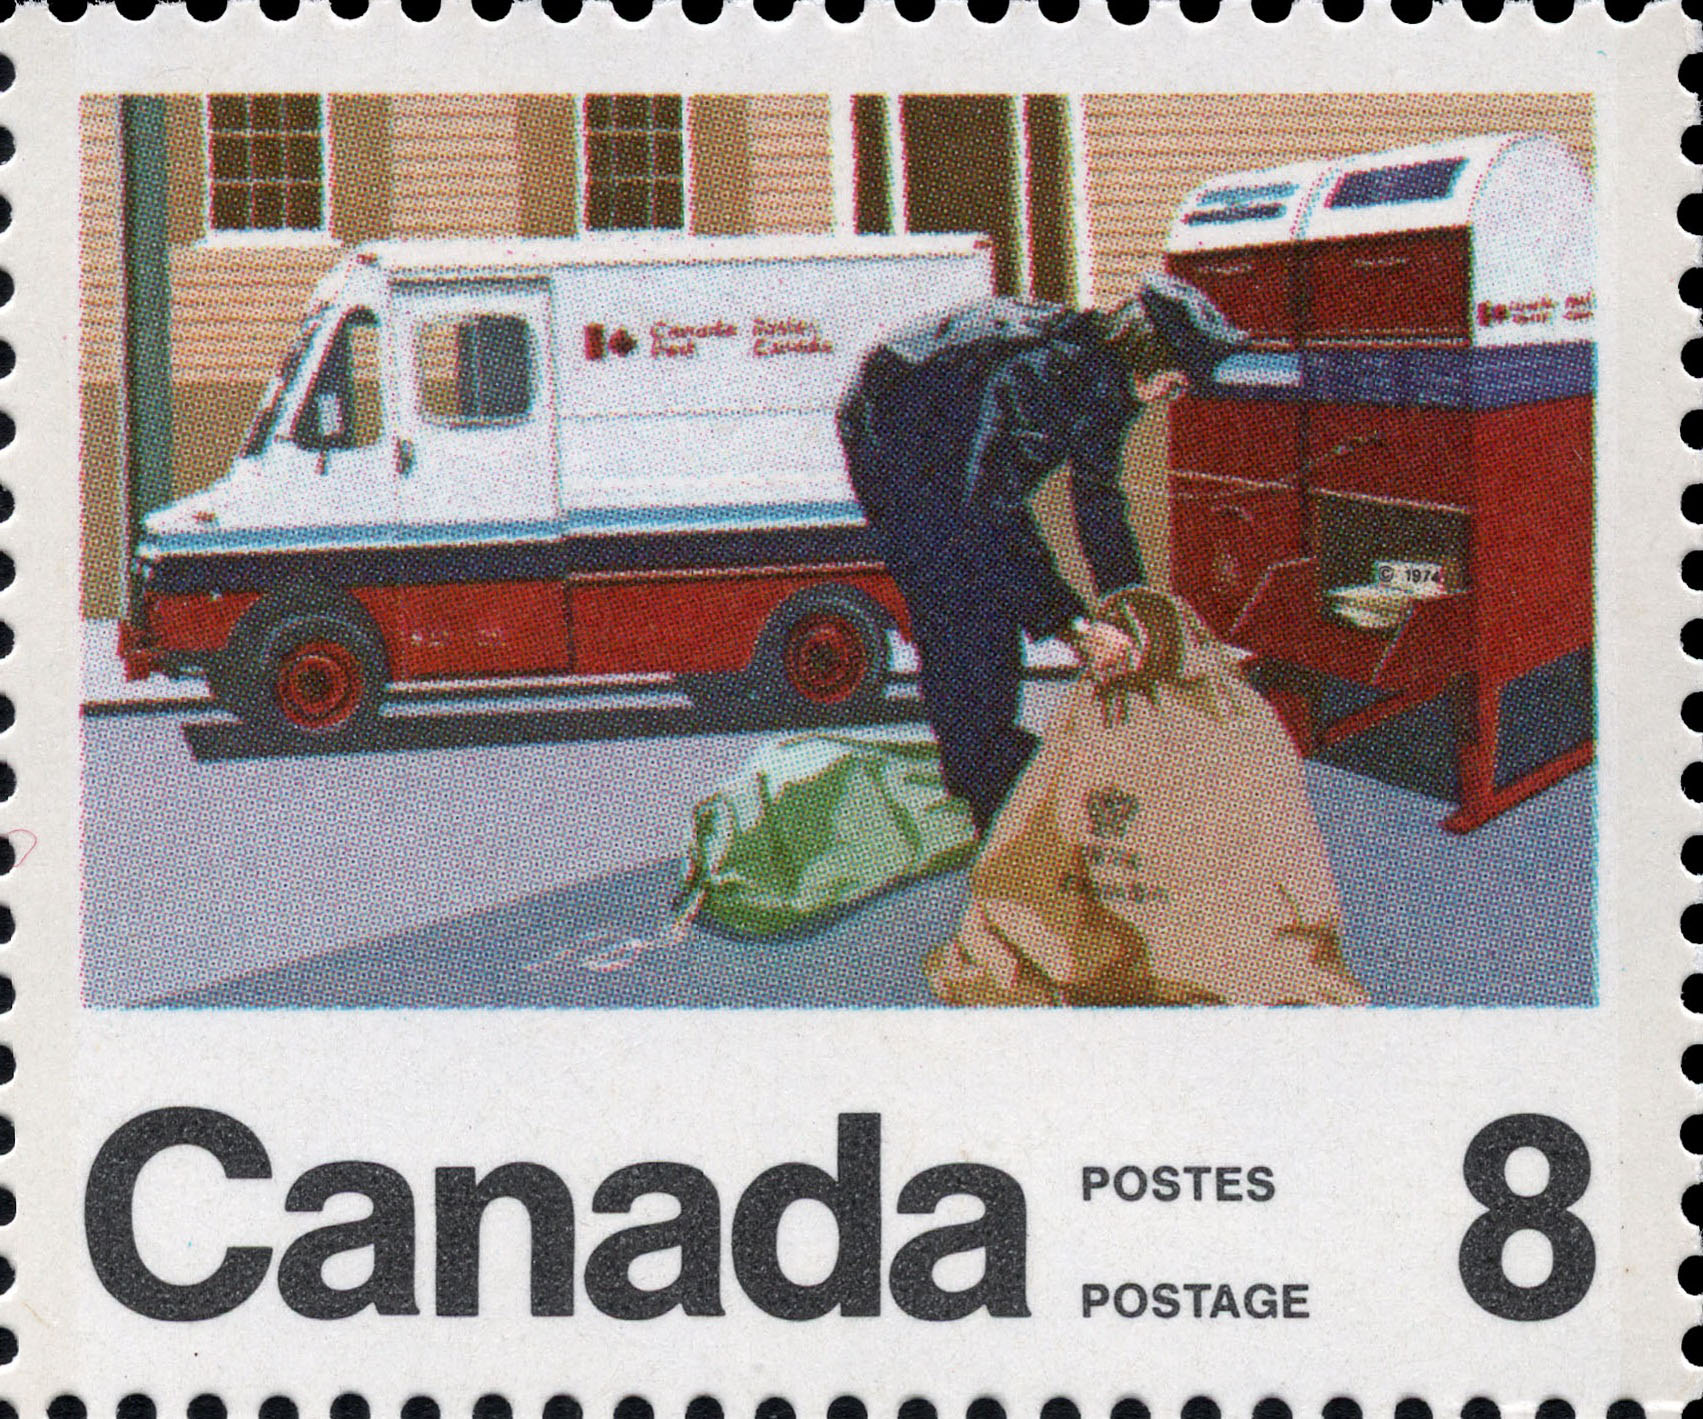 Mail Services Courier Canada Postage Stamp